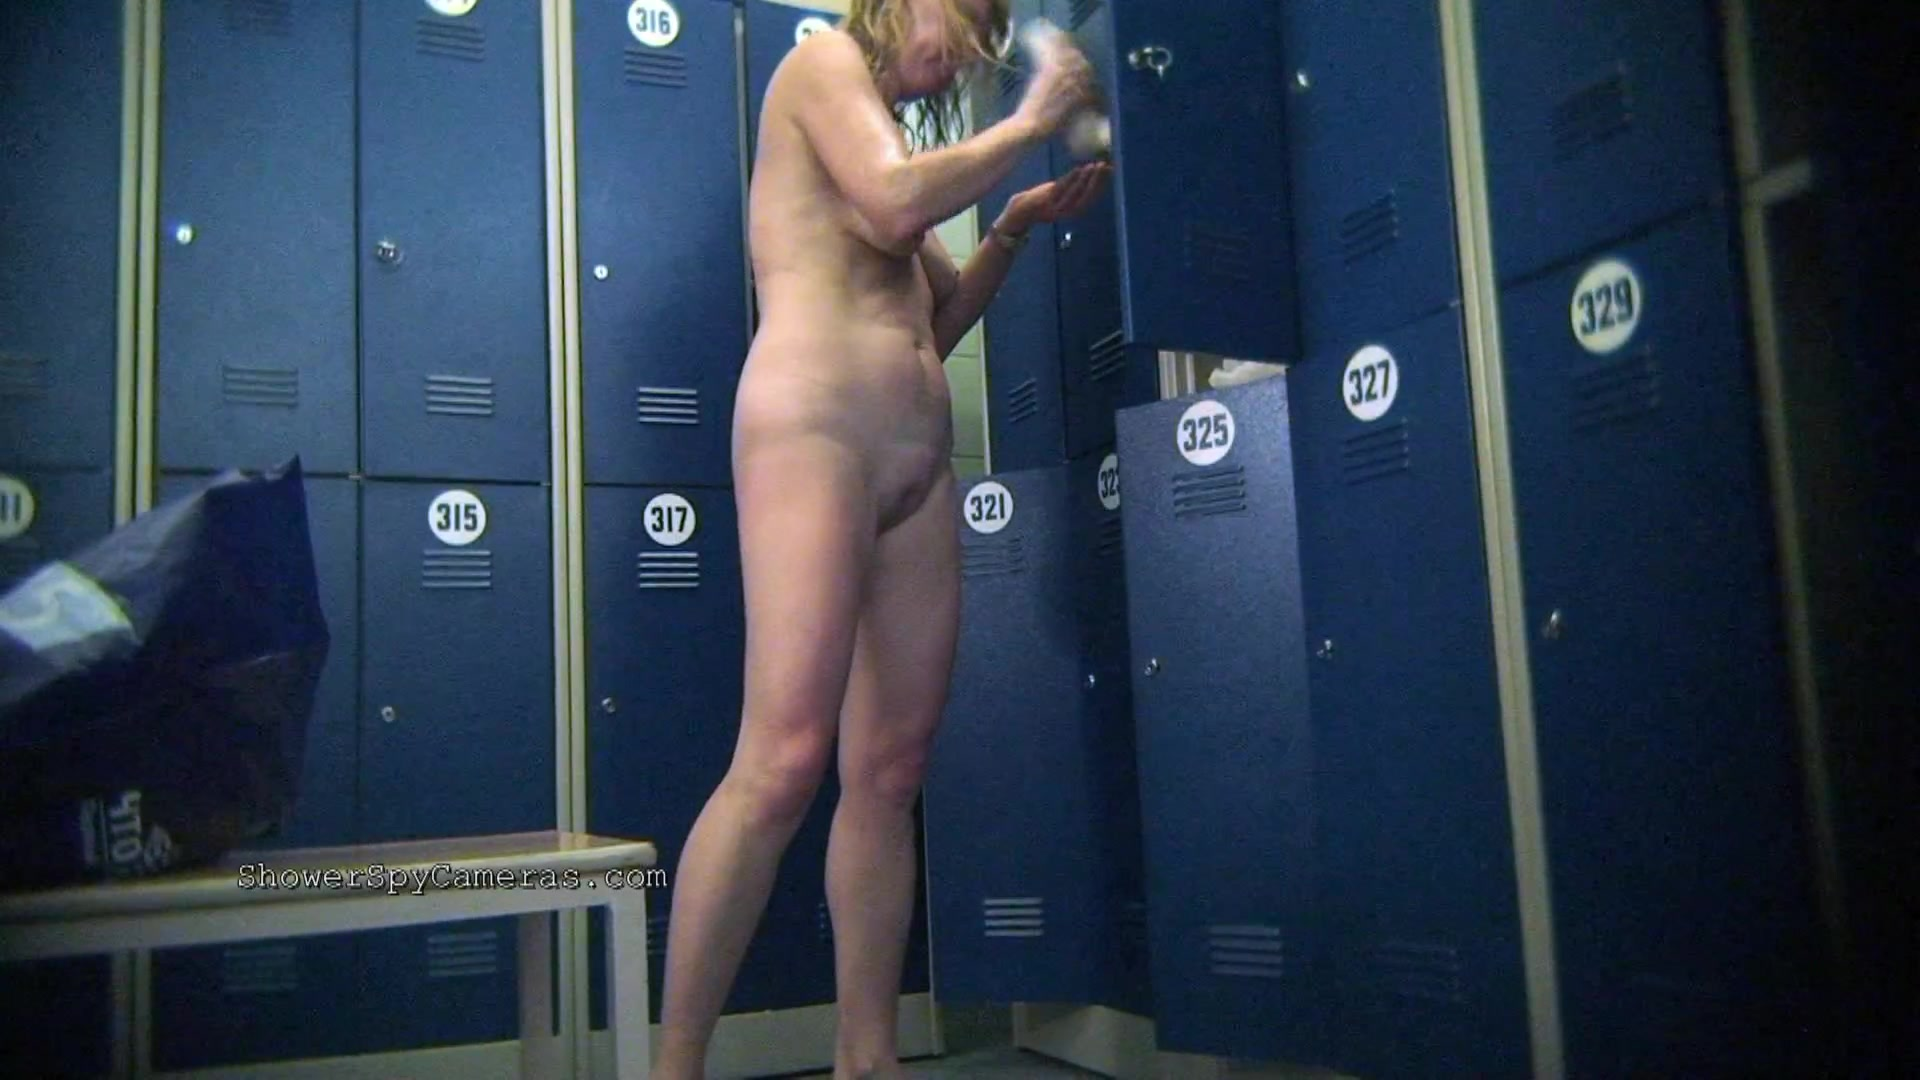 Videos of locker room voyeur